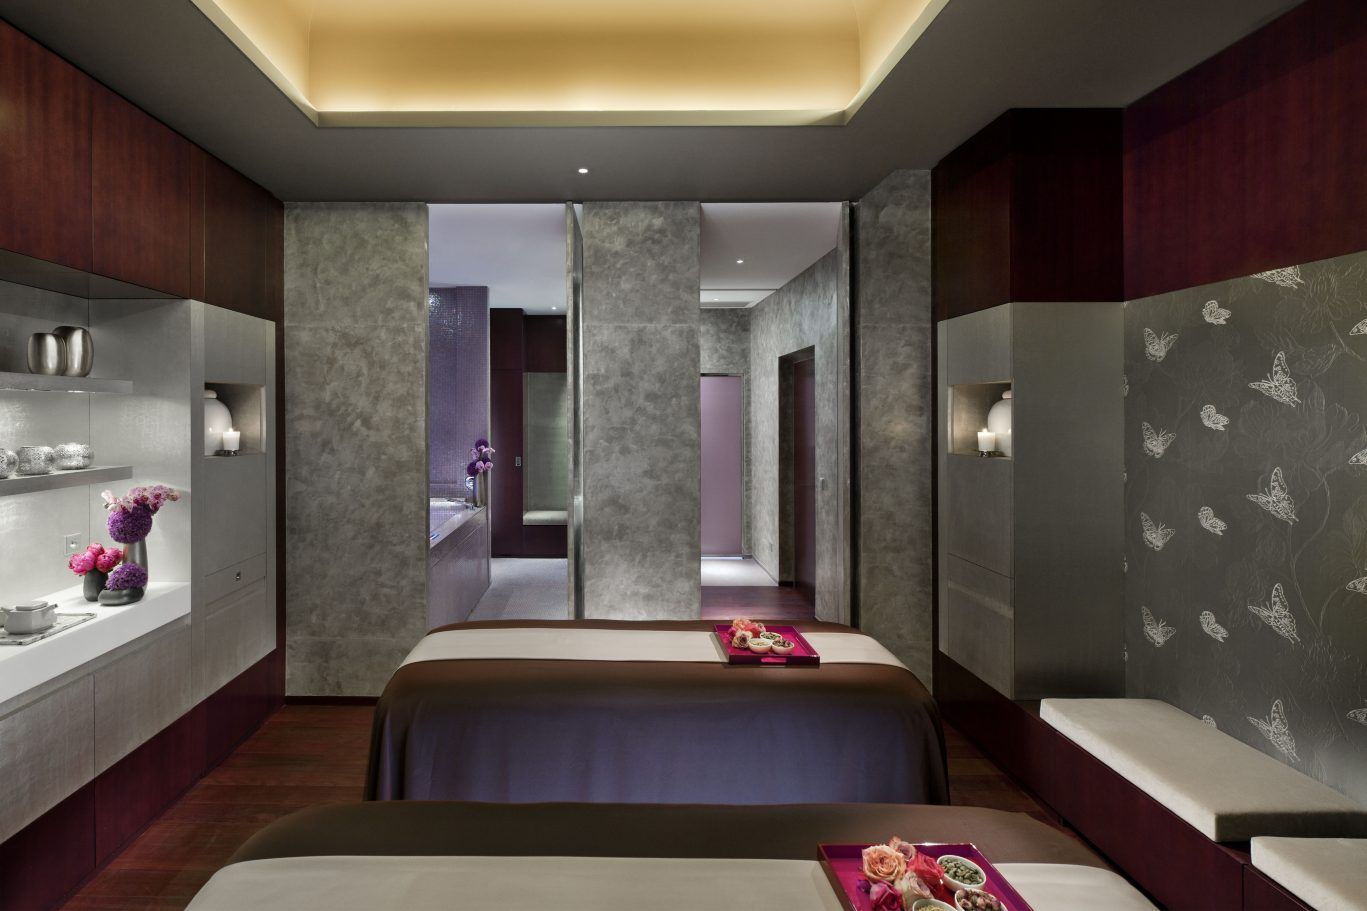 5 Star Hotel Photo Gallery | Mandarin Oriental, Paris